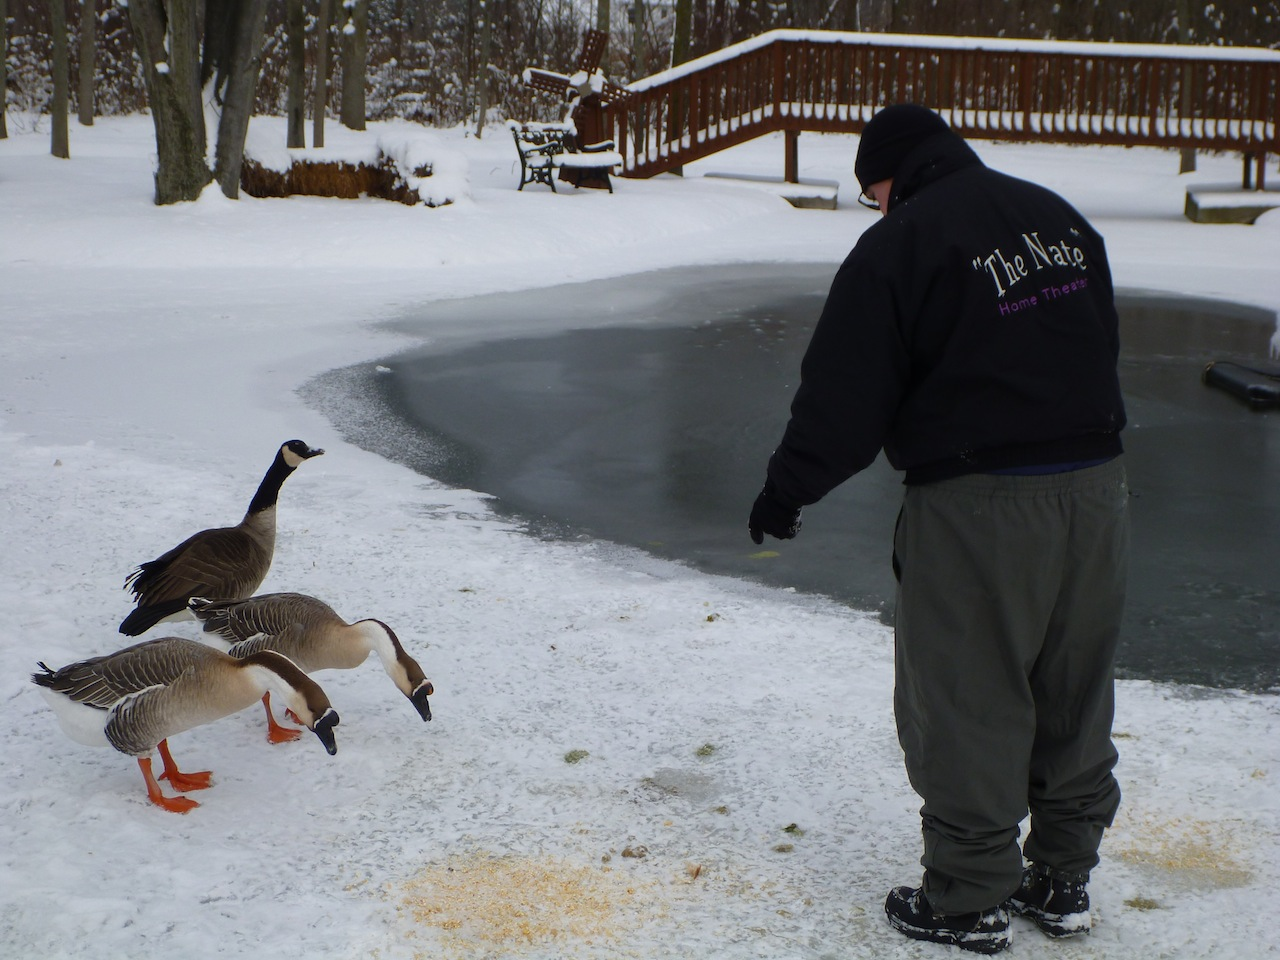 David Feeding The Neighborhood Geese. Two Chinese Geese and One Canada Goose.